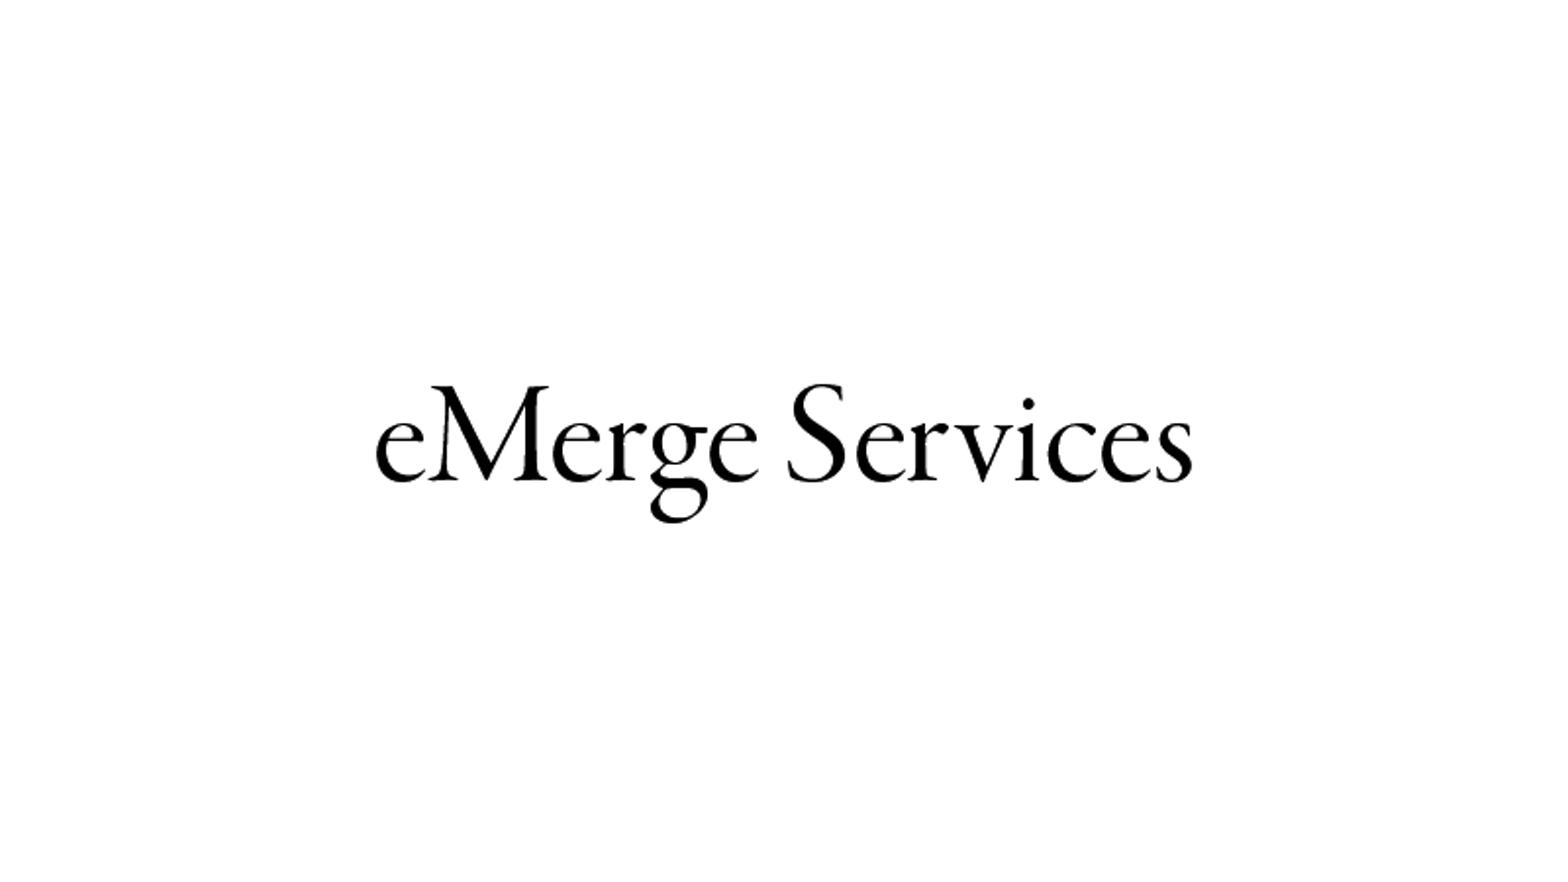 The eMerge Services logo